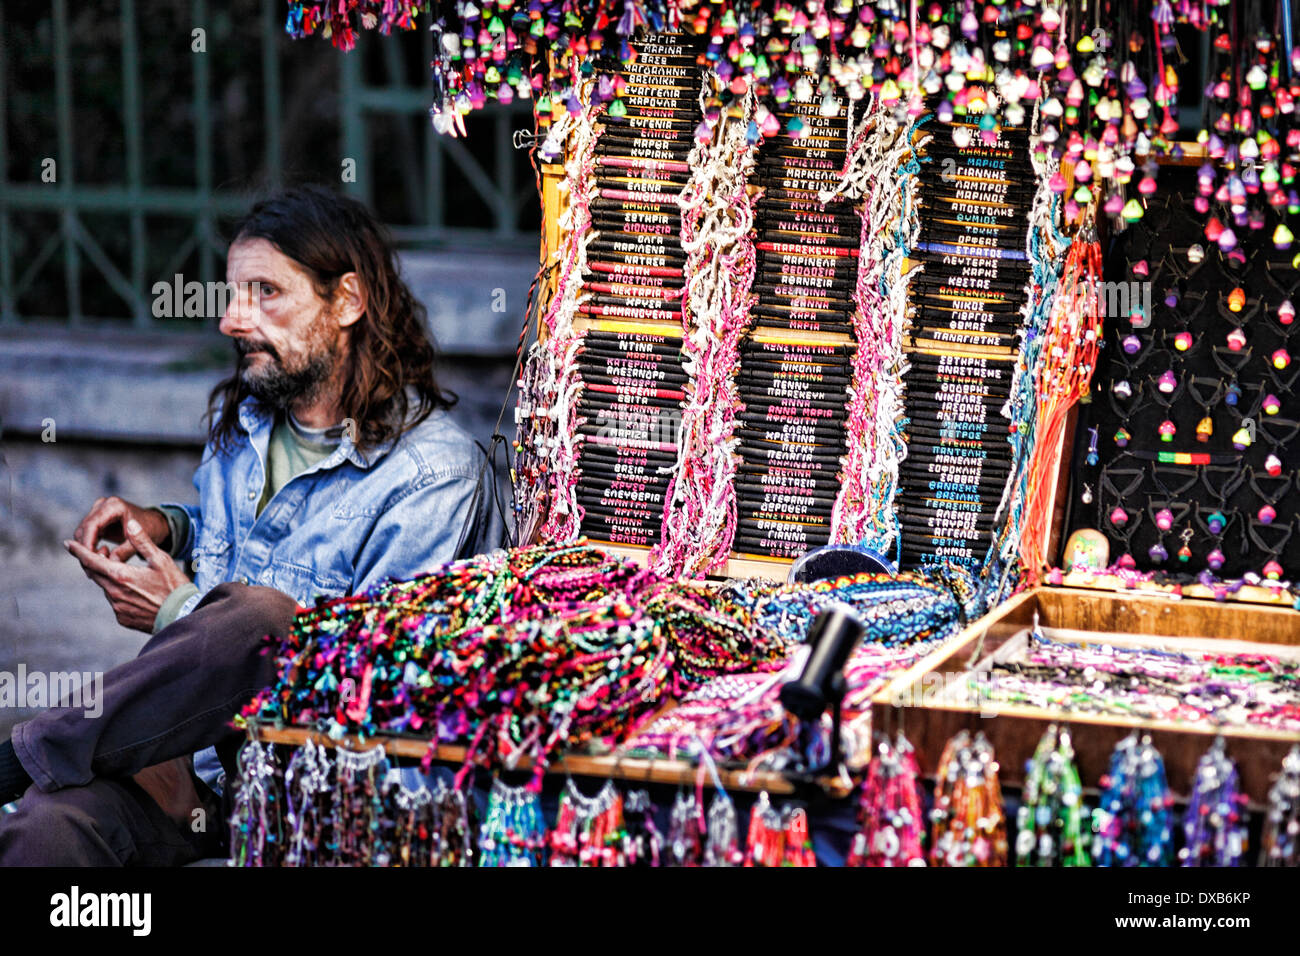 Souvenirs in the streets of Athens, Greece - Stock Image